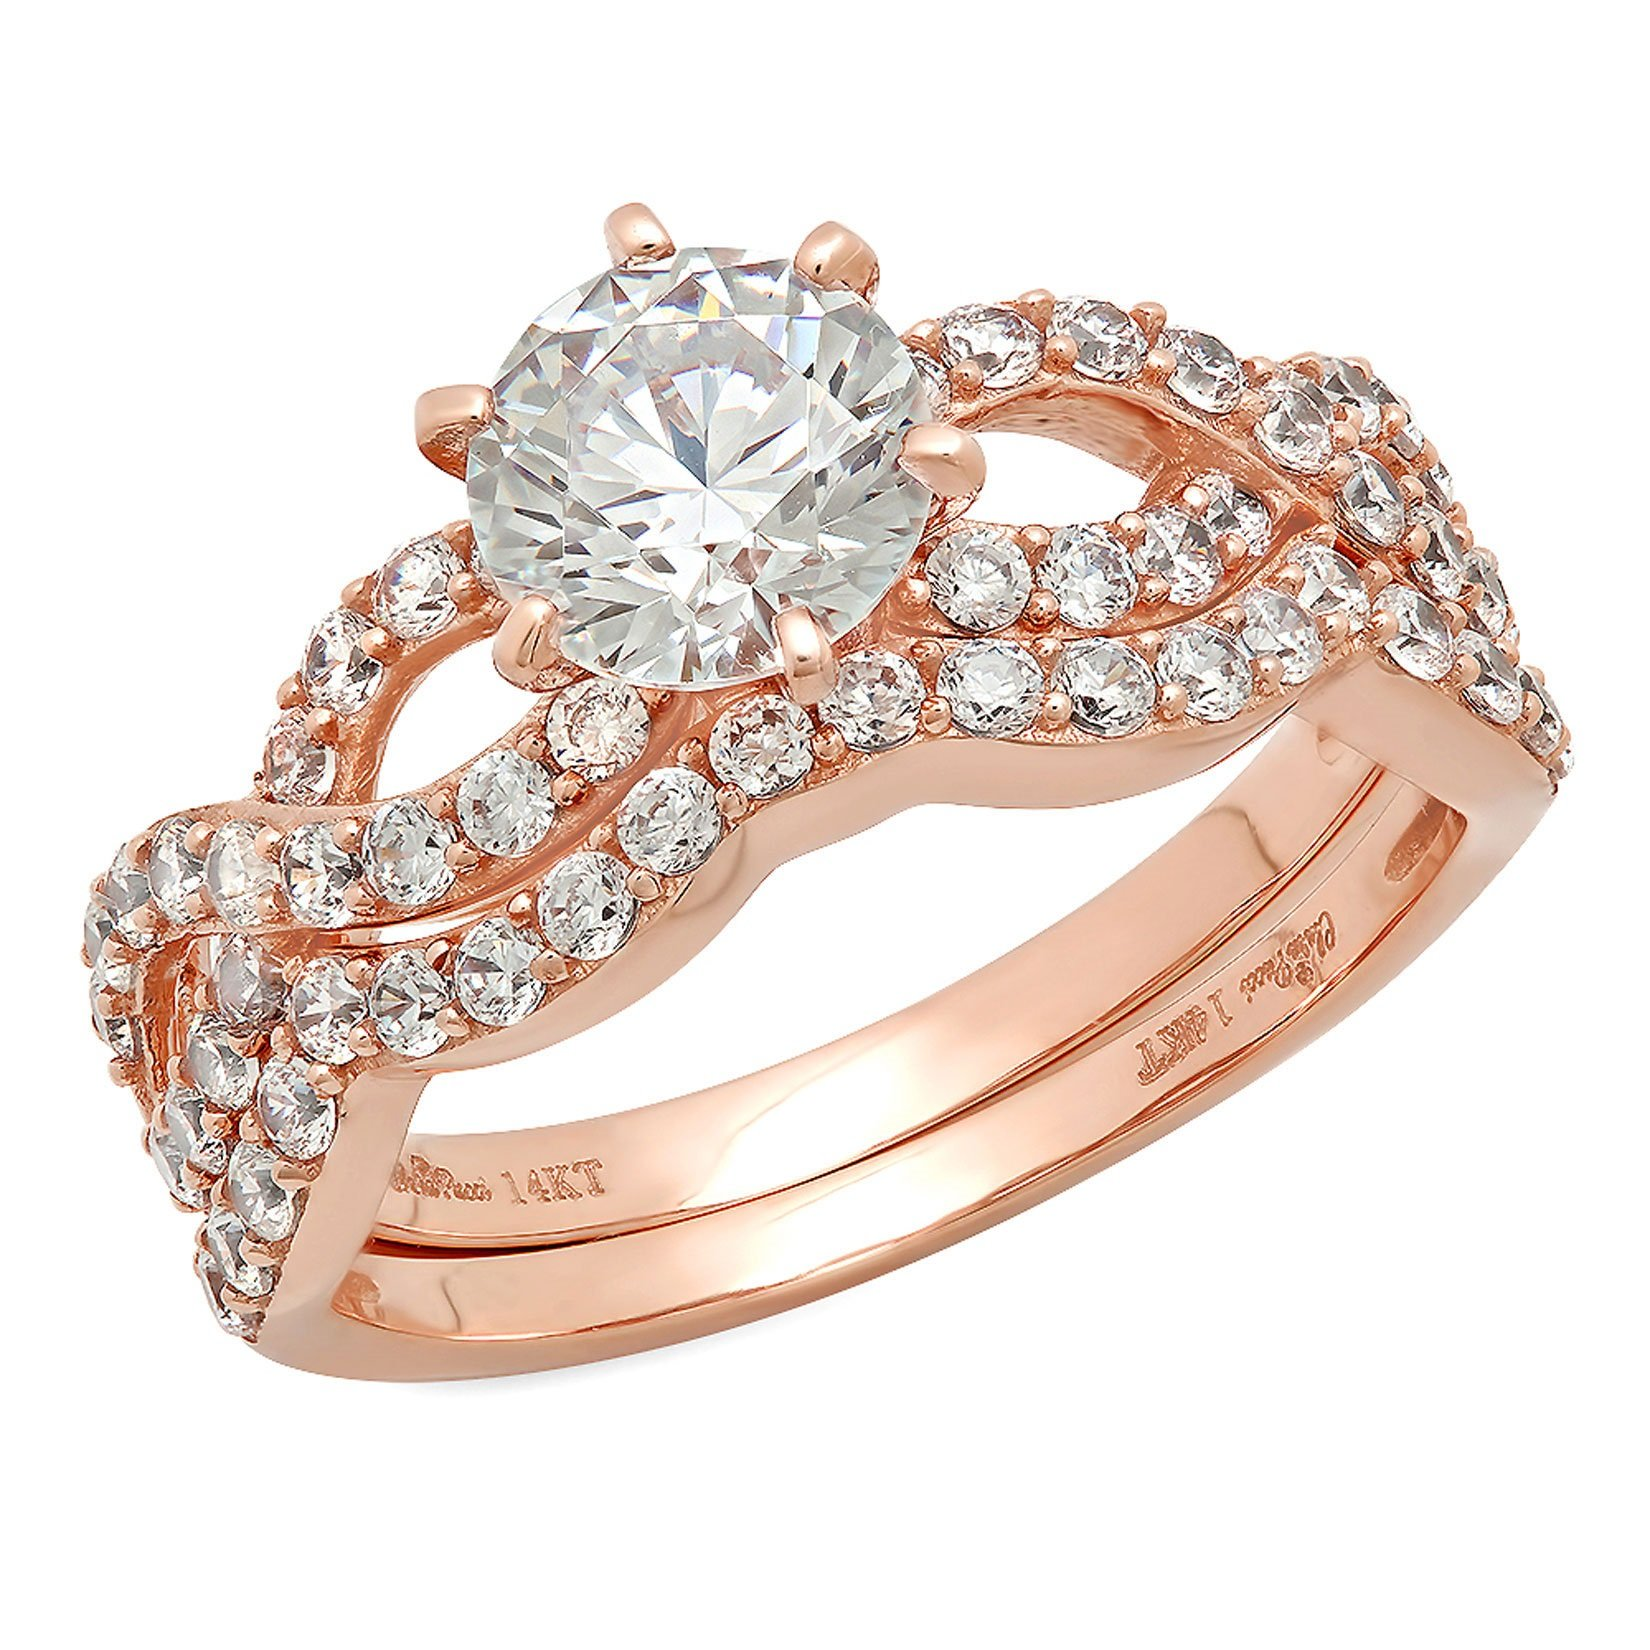 1.7 Ct Round Cut Pave Halo Engagement Wedding Bridal Anniversary Ring Band Set 14K Rose Gold, Size 9.25, Clara Pucci